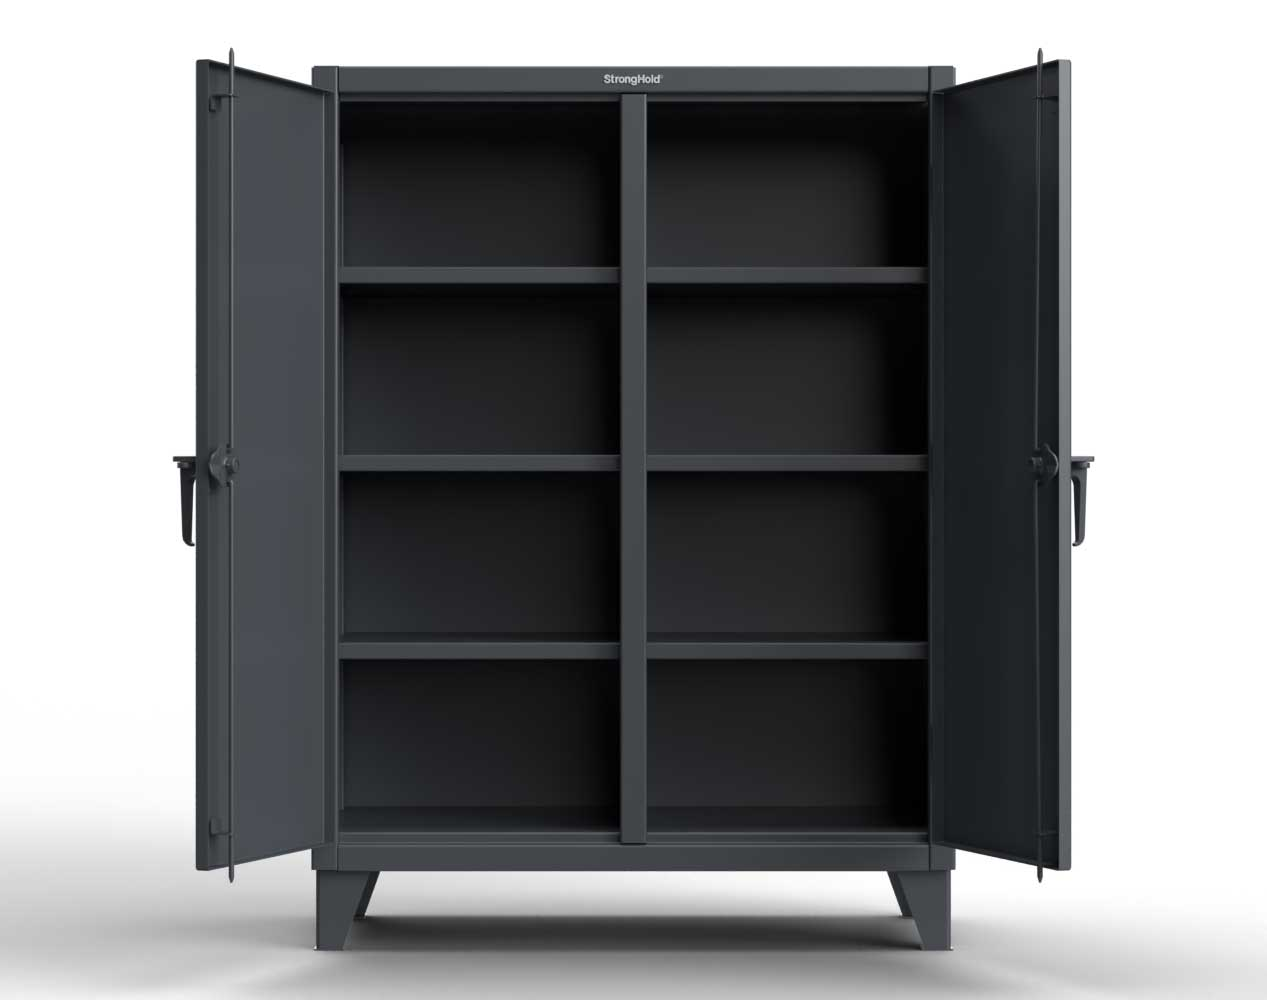 Extra Heavy Duty 12 GA Double Shift Cabinet with 6 Shelves – 36 In. W x 24 In. D x 66 In. H